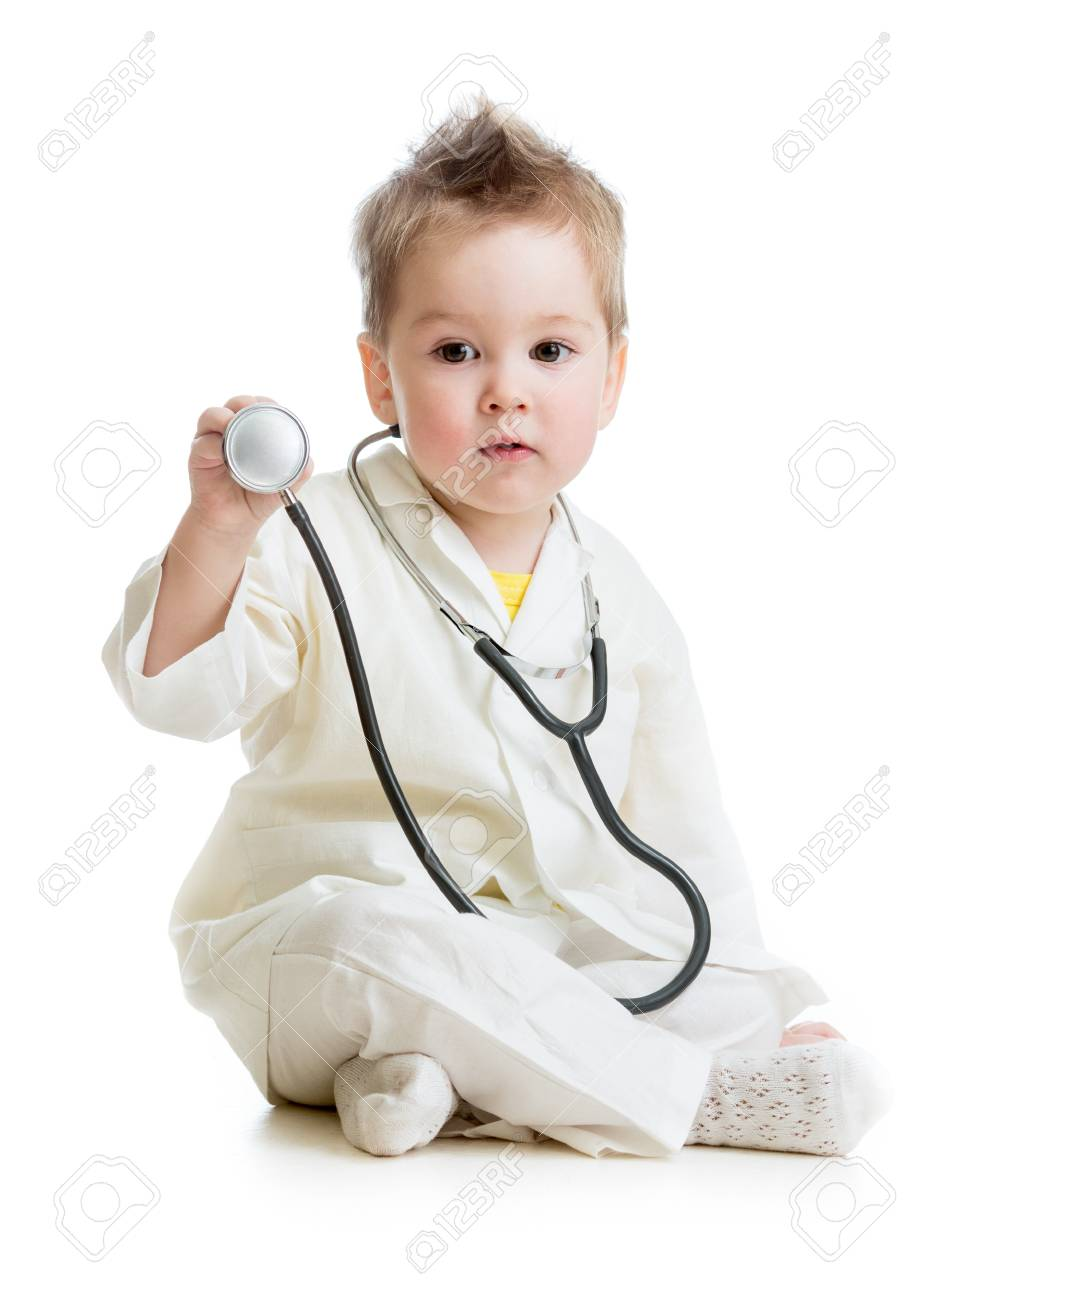 kid or child playing doctor with stethoscope isolated Stock Photo - 16300904